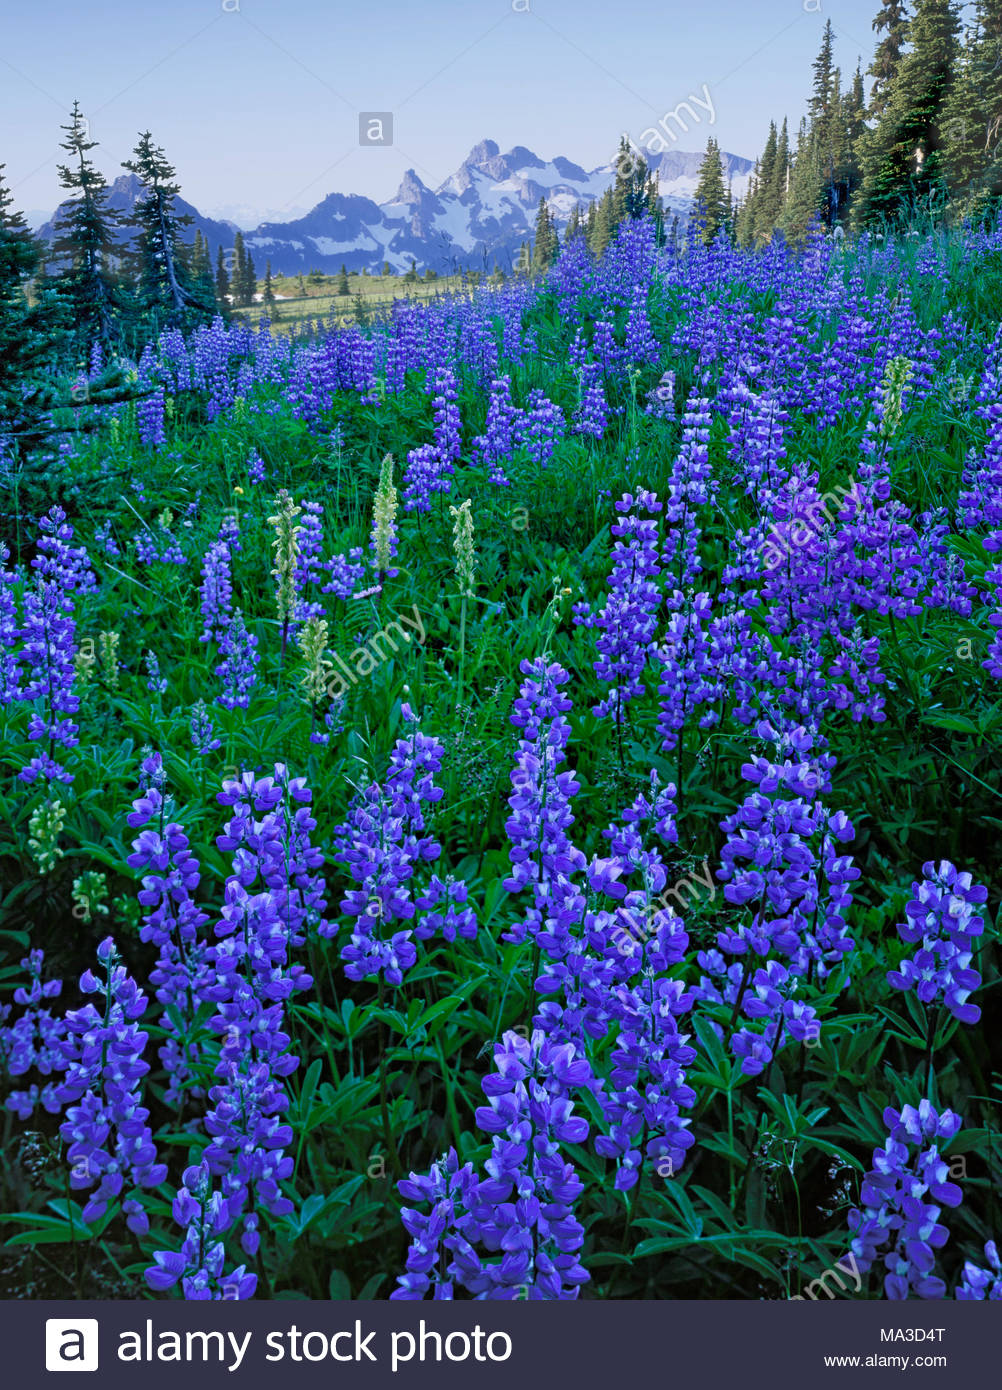 Wildflowers, Mount Rainier National Park, Washington - Stock Image